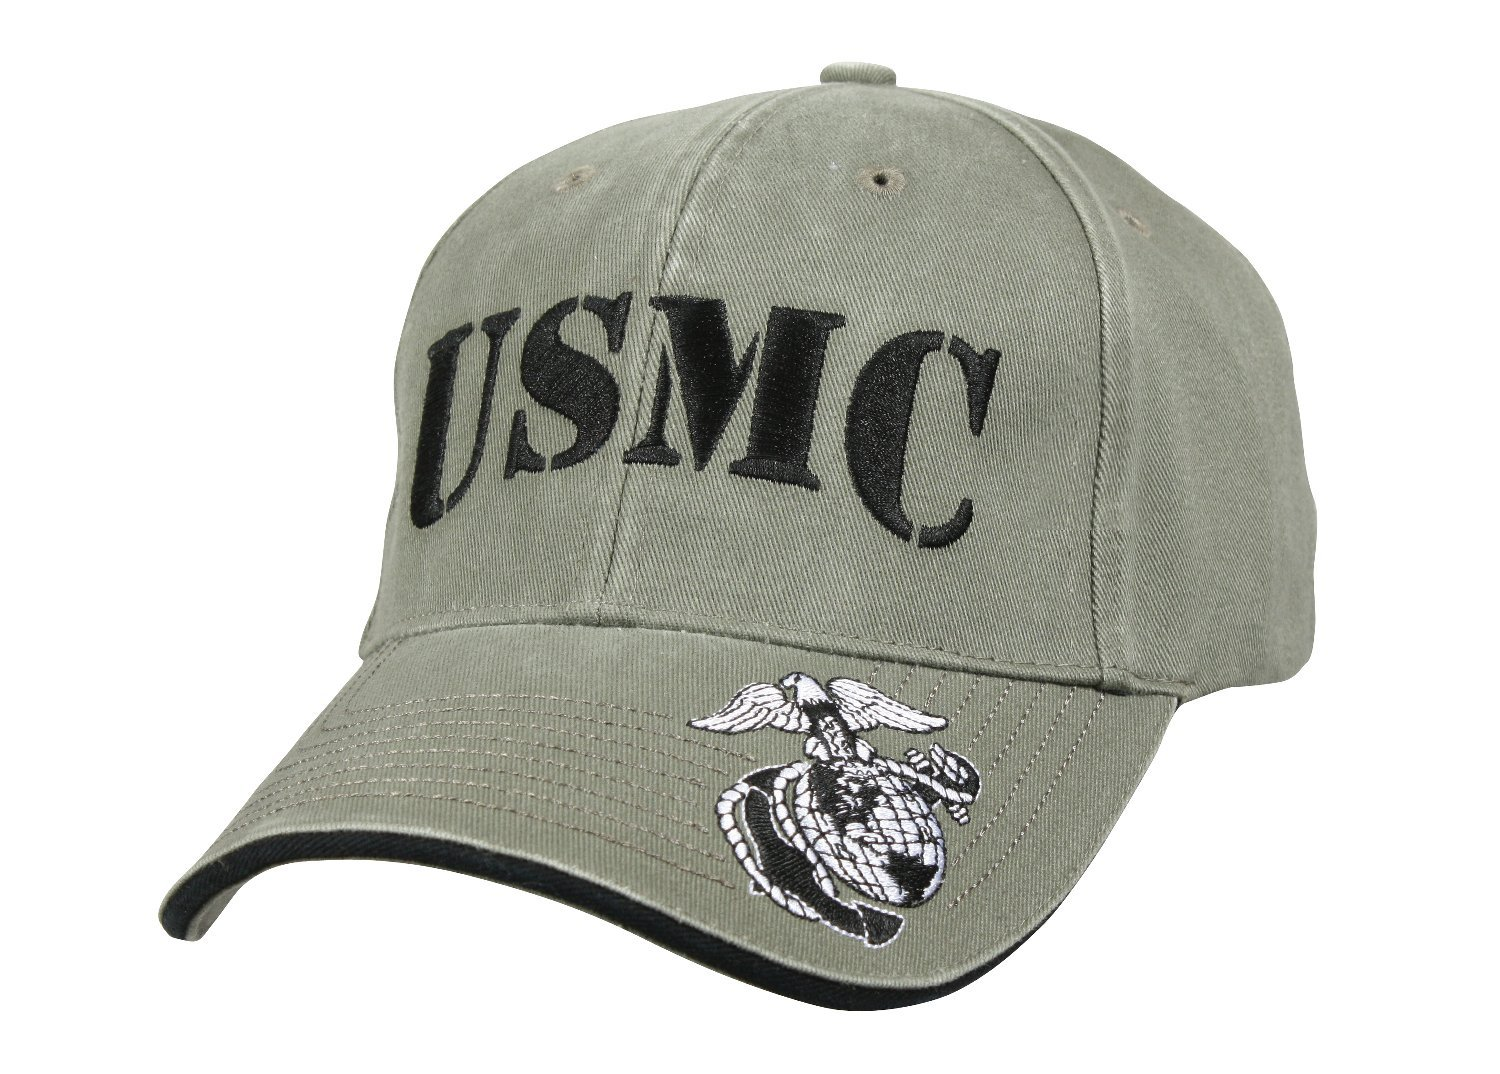 Rothco Deluxe Vintage USMC Embroidered Low Pro Cap Olive Drab product image 3d31baf0e